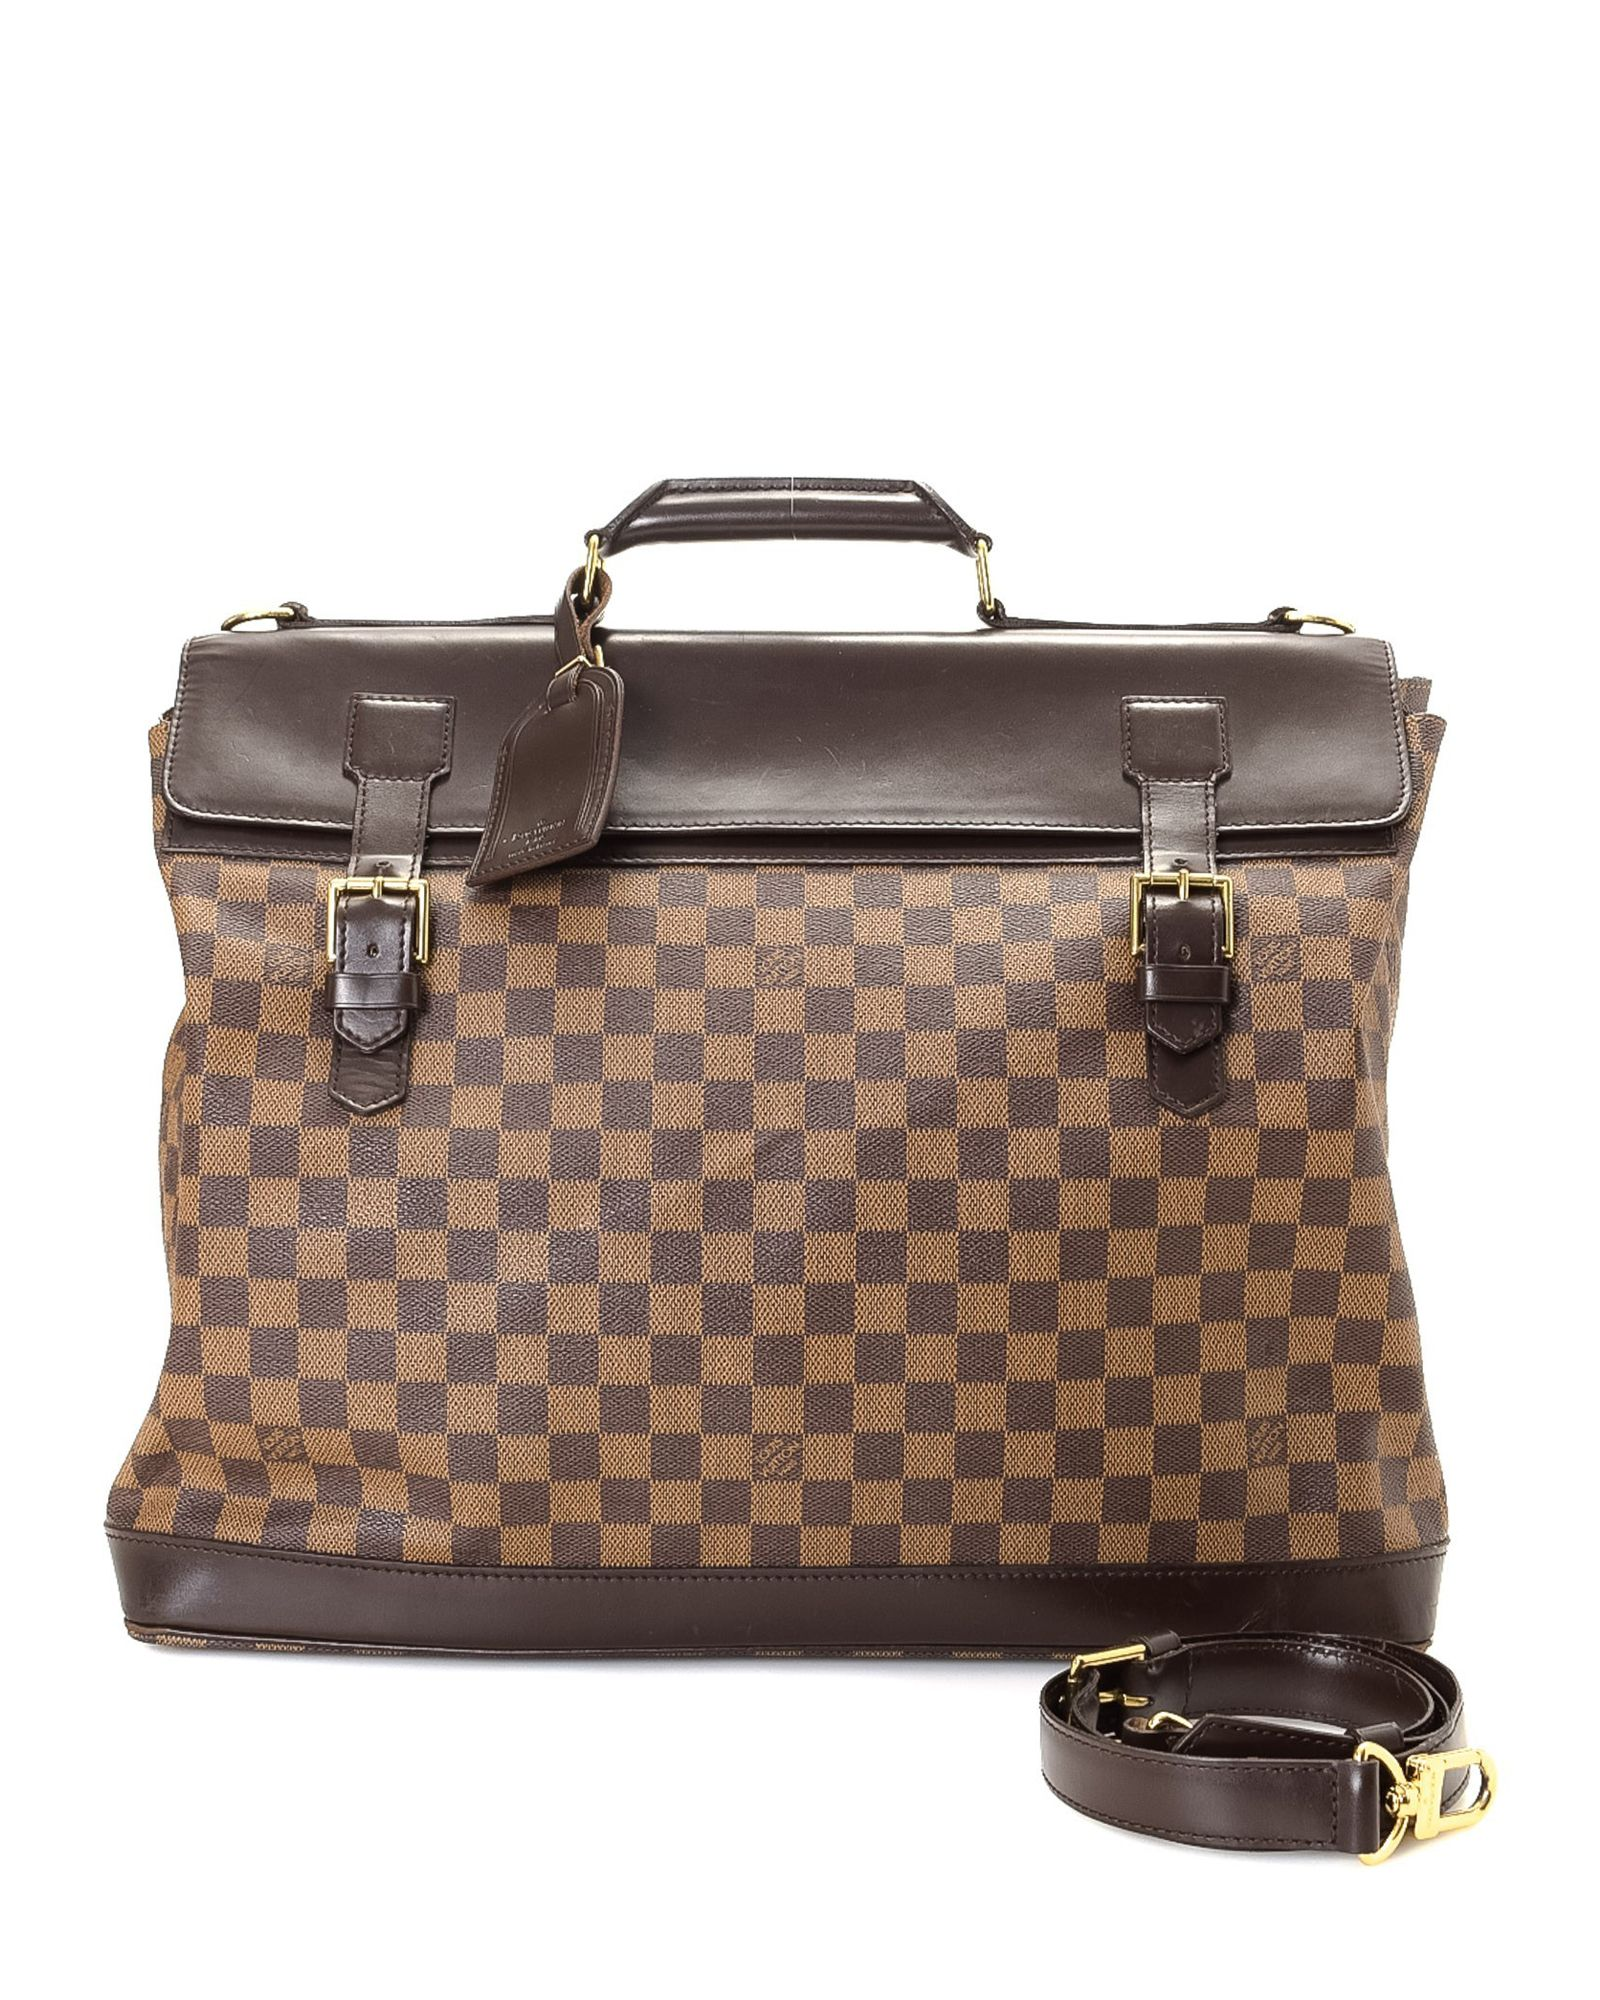 a5f604ead1c9 Louis Vuitton Damier Ebene West-End GM Travel Bag - Vintage ...